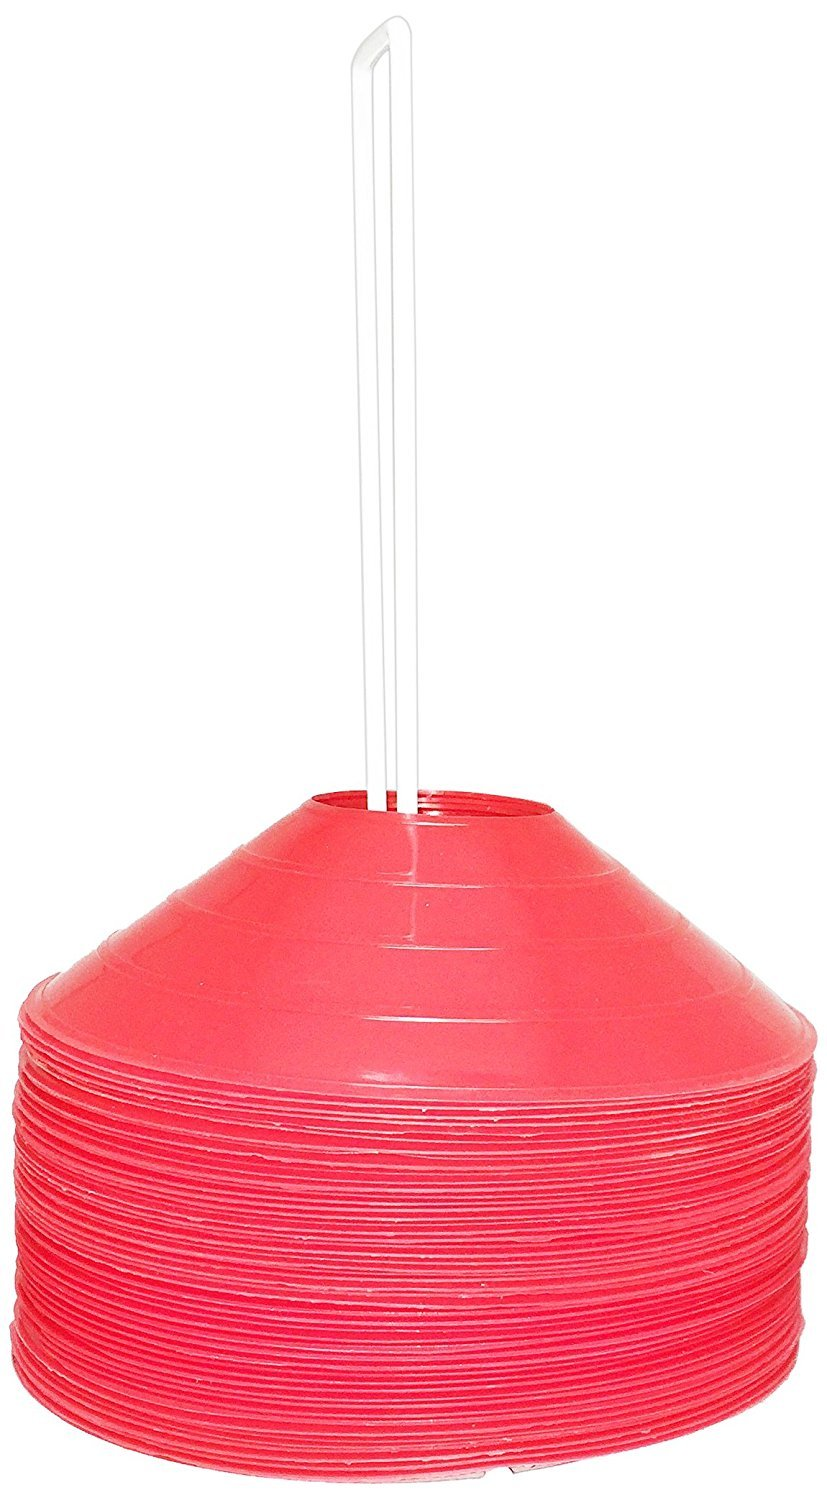 BlueDot Trading Sport Disc Cones 25 Pack Sports 25/_red/_disc/_noholder Red BlueDot Trading